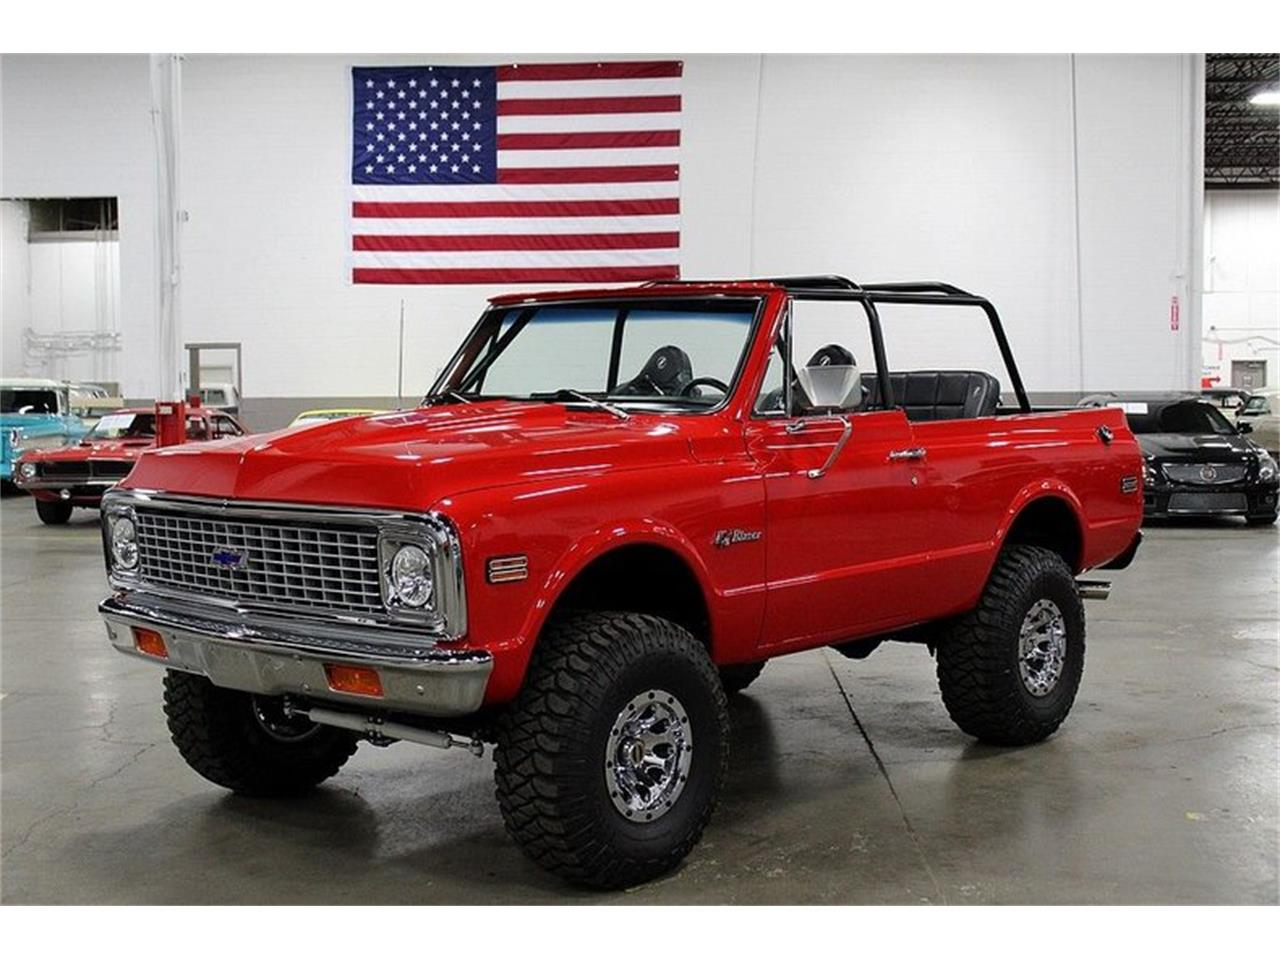 for sale 1971 chevrolet blazer in kentwood, michigan cars - grand rapids, mi at geebo